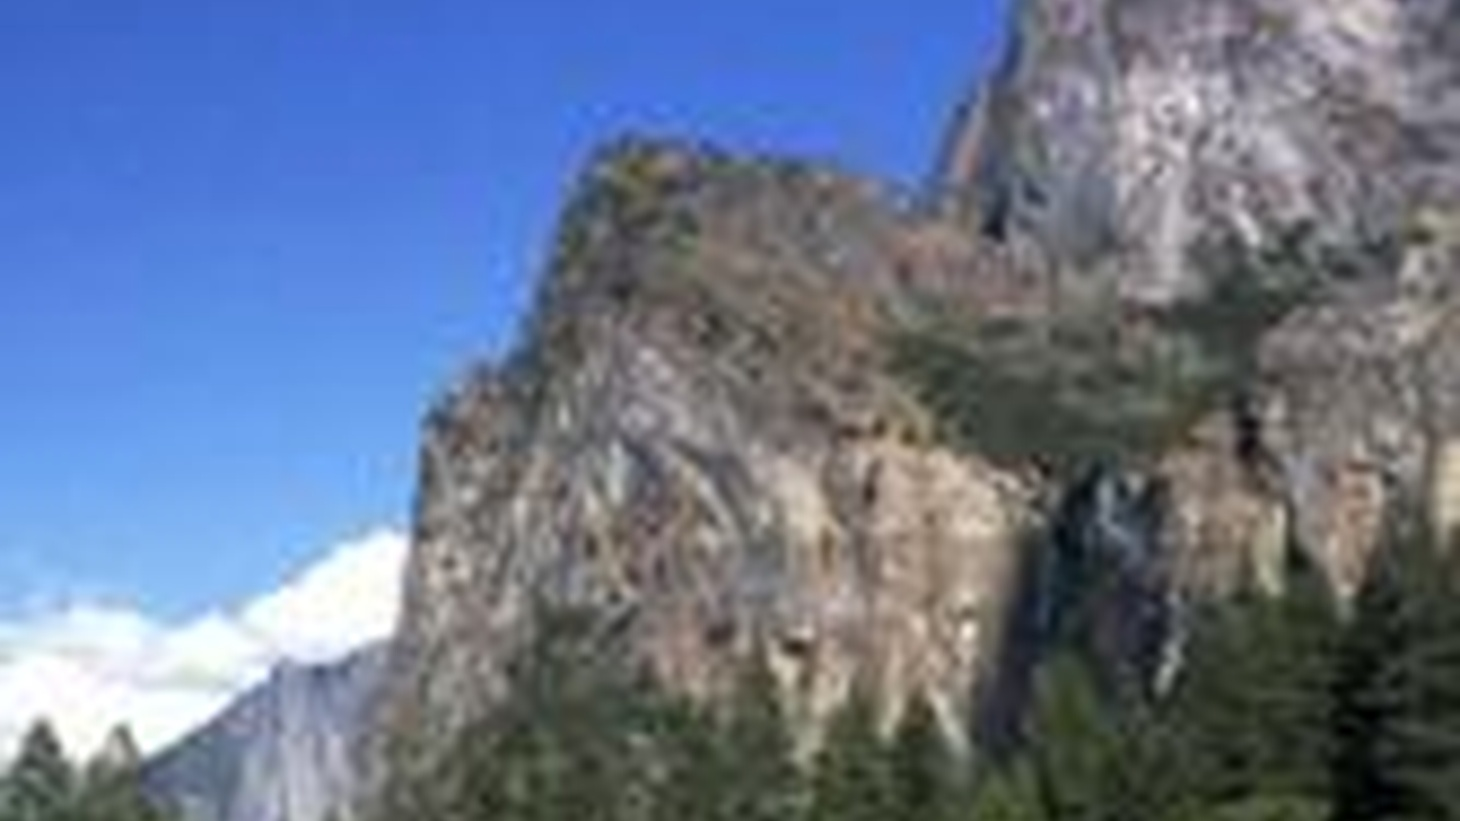 A Japanese visitor plunged to his death last Saturday, the third fatality on Yosemite Valley's Half Dome in less than a year. It's a daunting climb up a 300-foot, almost-vertical ladder but more and more inexperienced, out-of-shape hikers are taking the risk. On Reporter's Notebook, two Presidents will visit Orange County tomorrow.